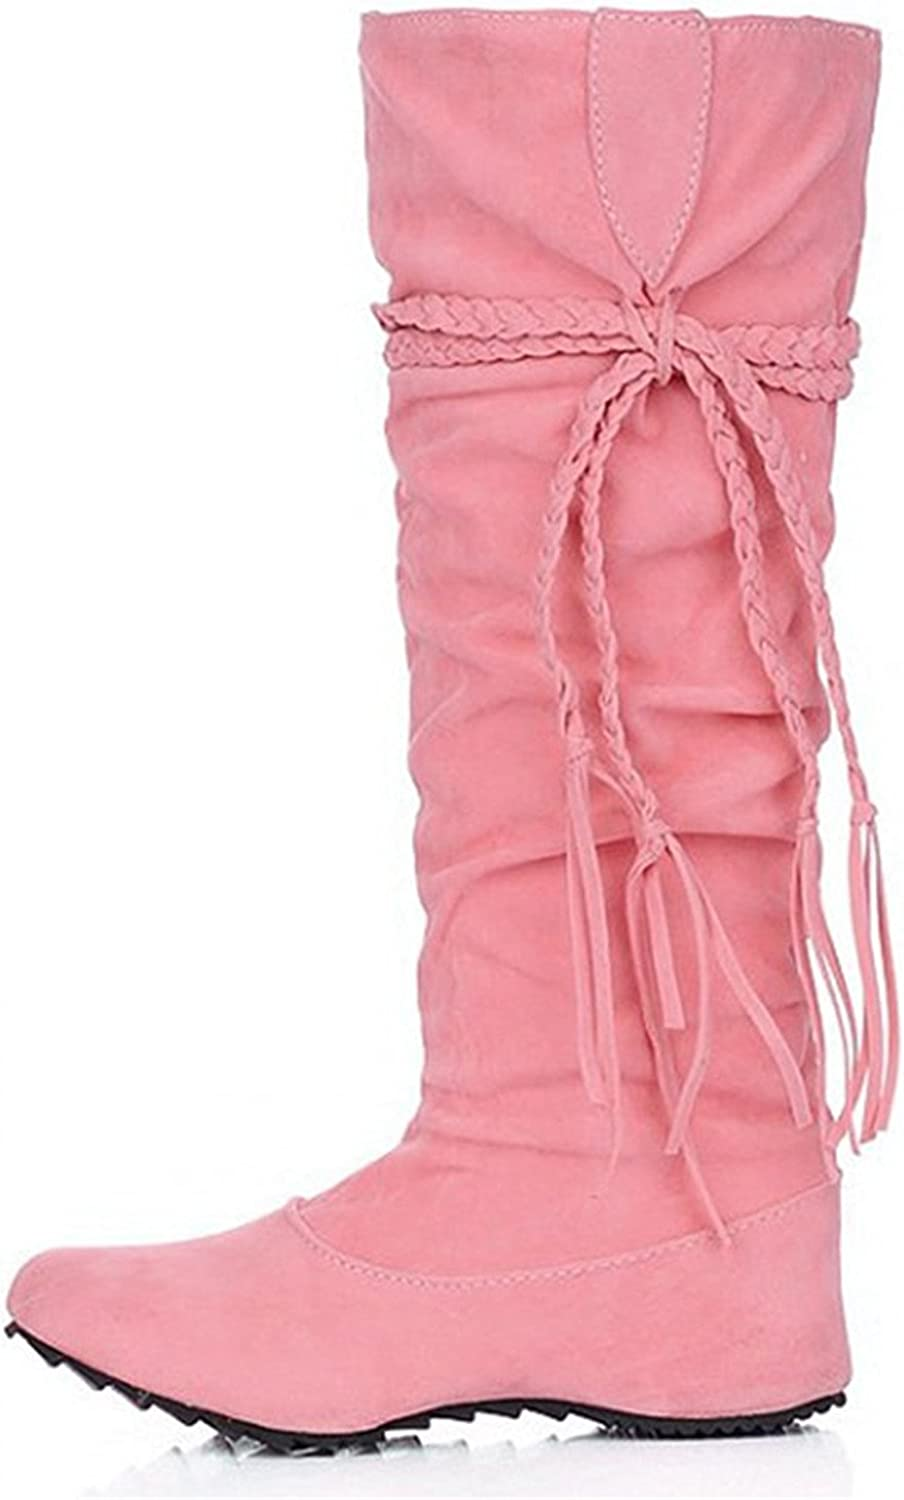 Henraly Women's Fashion Slouchy Fringes Heighten Knee High Boots